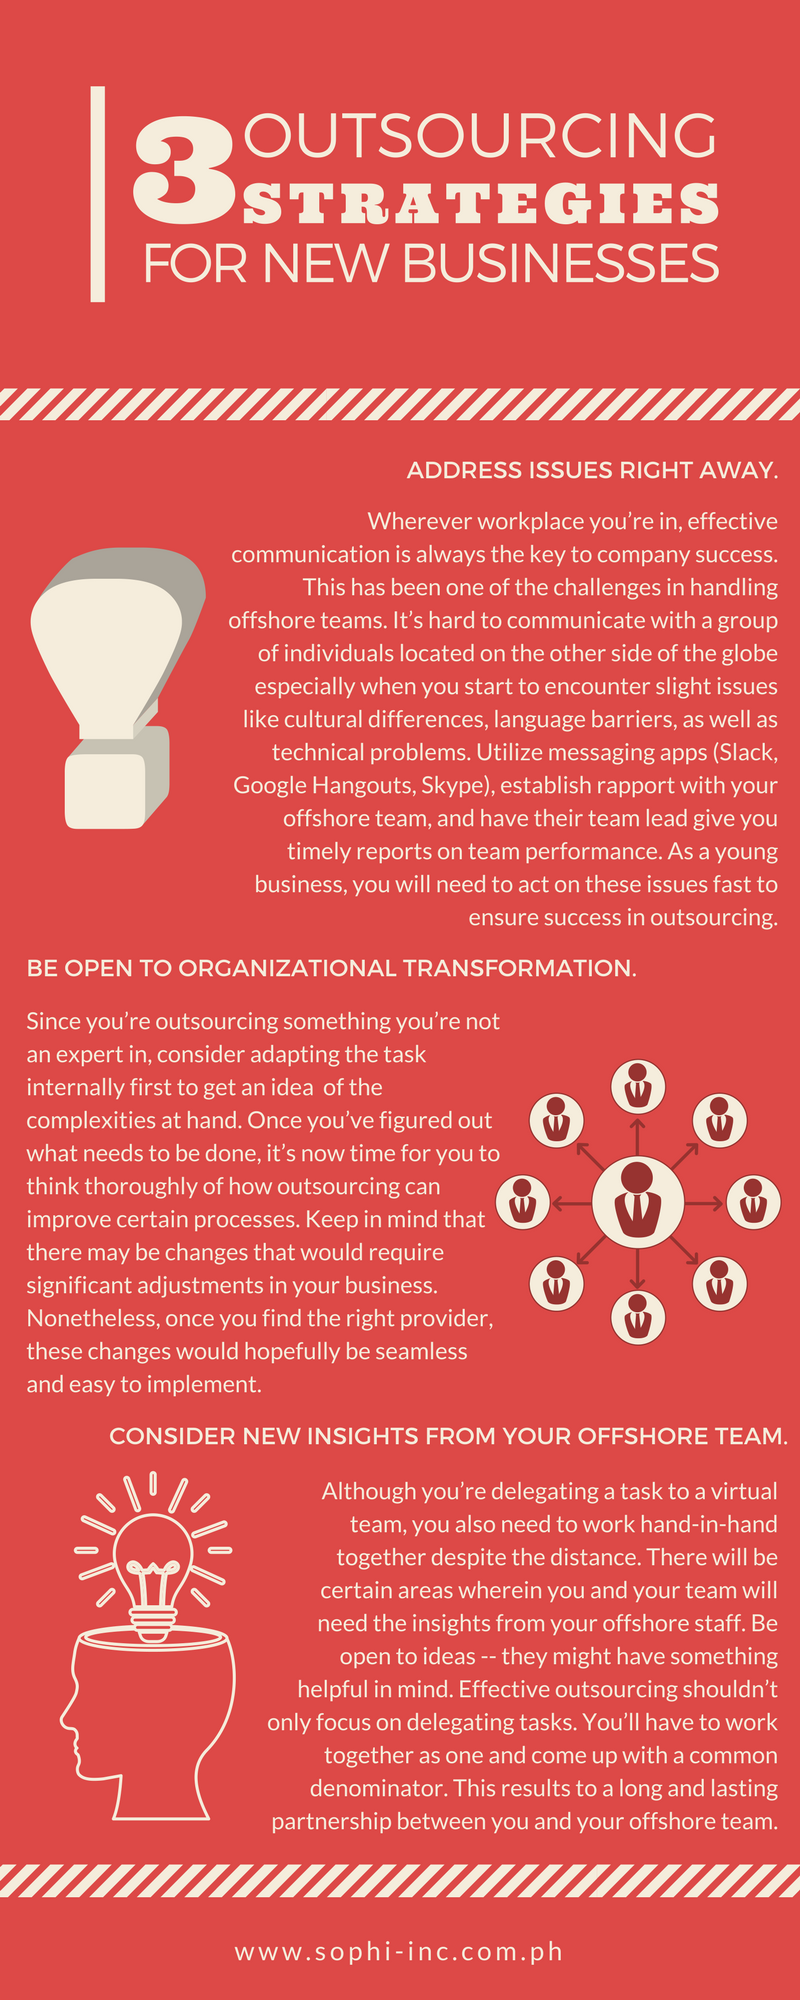 3 Outsourcing Strategies for New Businesses.png